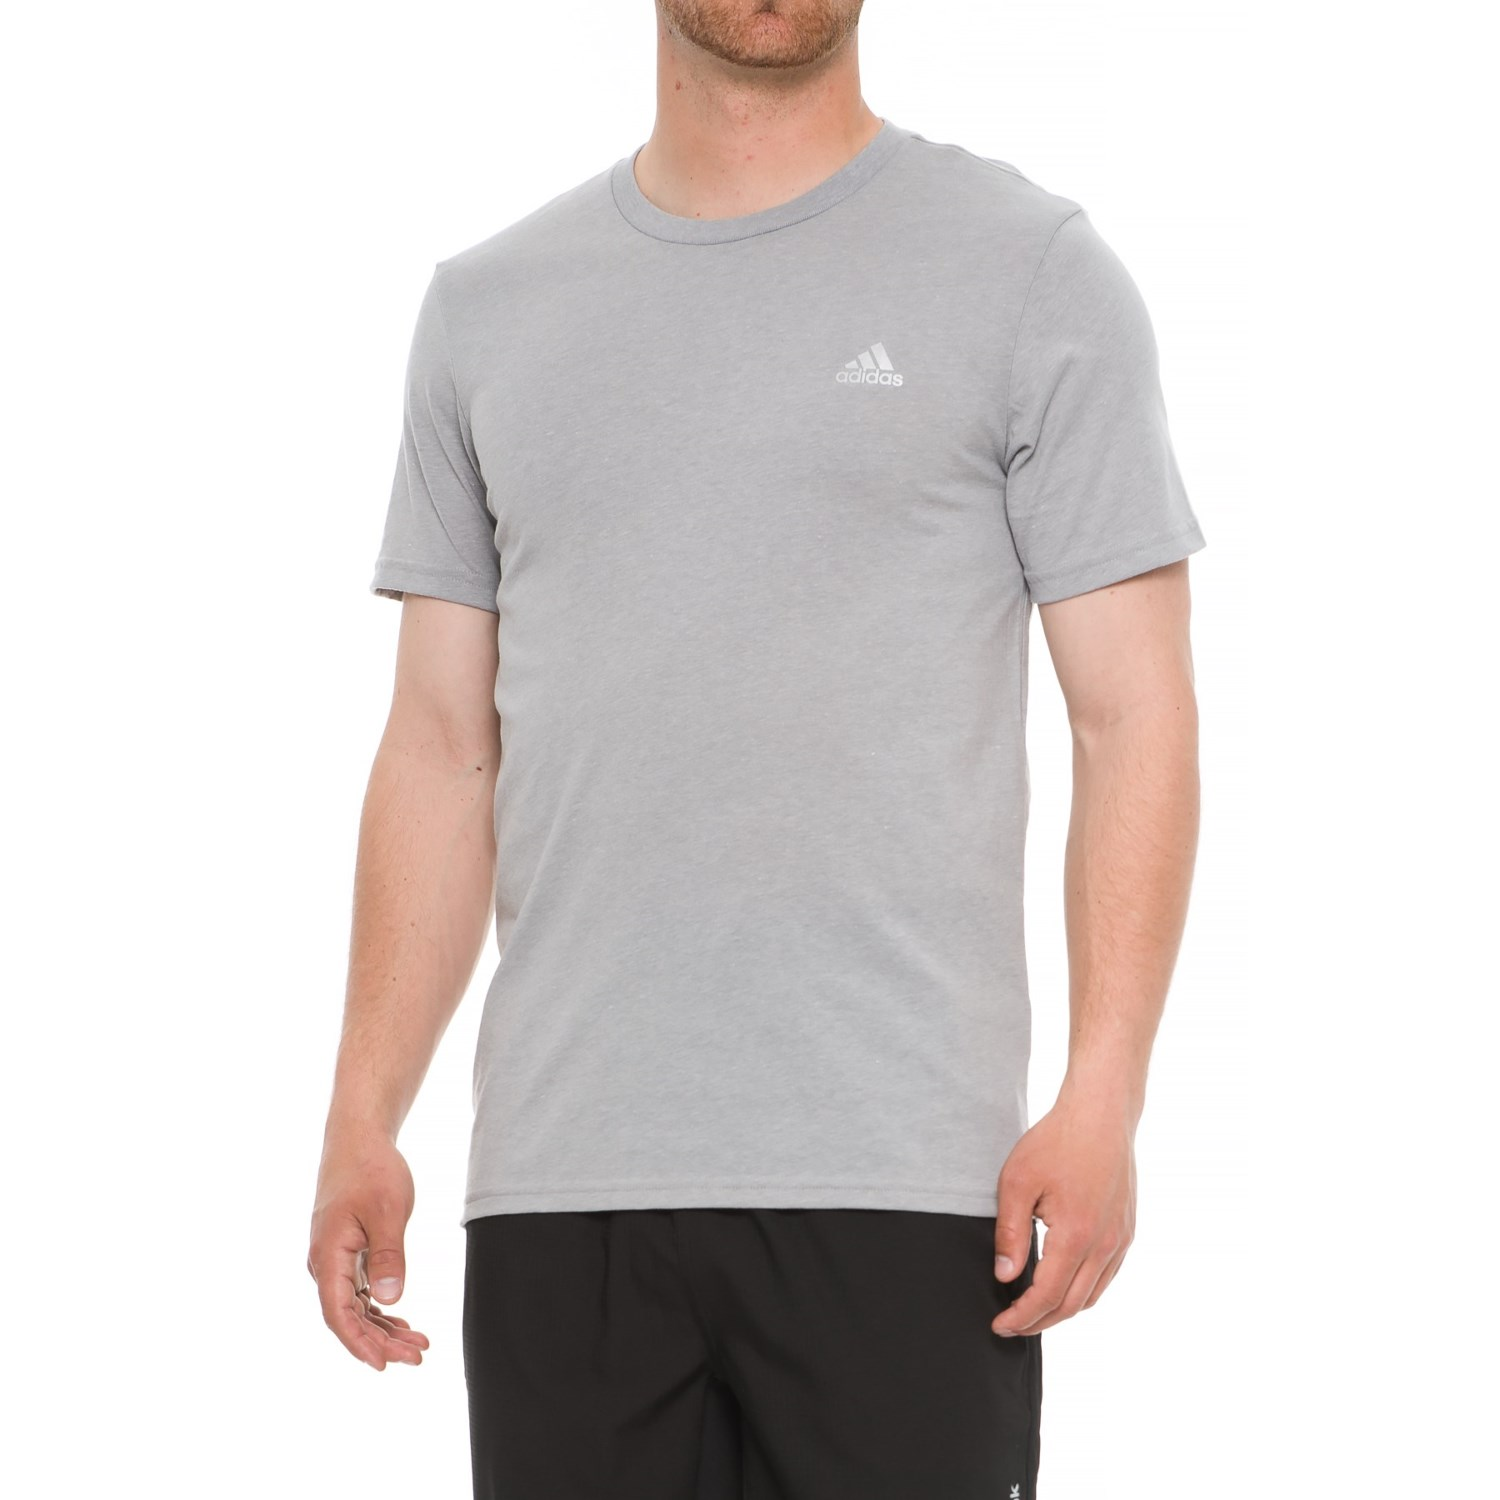 de8e79ef0efe3 adidas 60/40 T-Shirt - Short Sleeve (For Men) in Medium ...